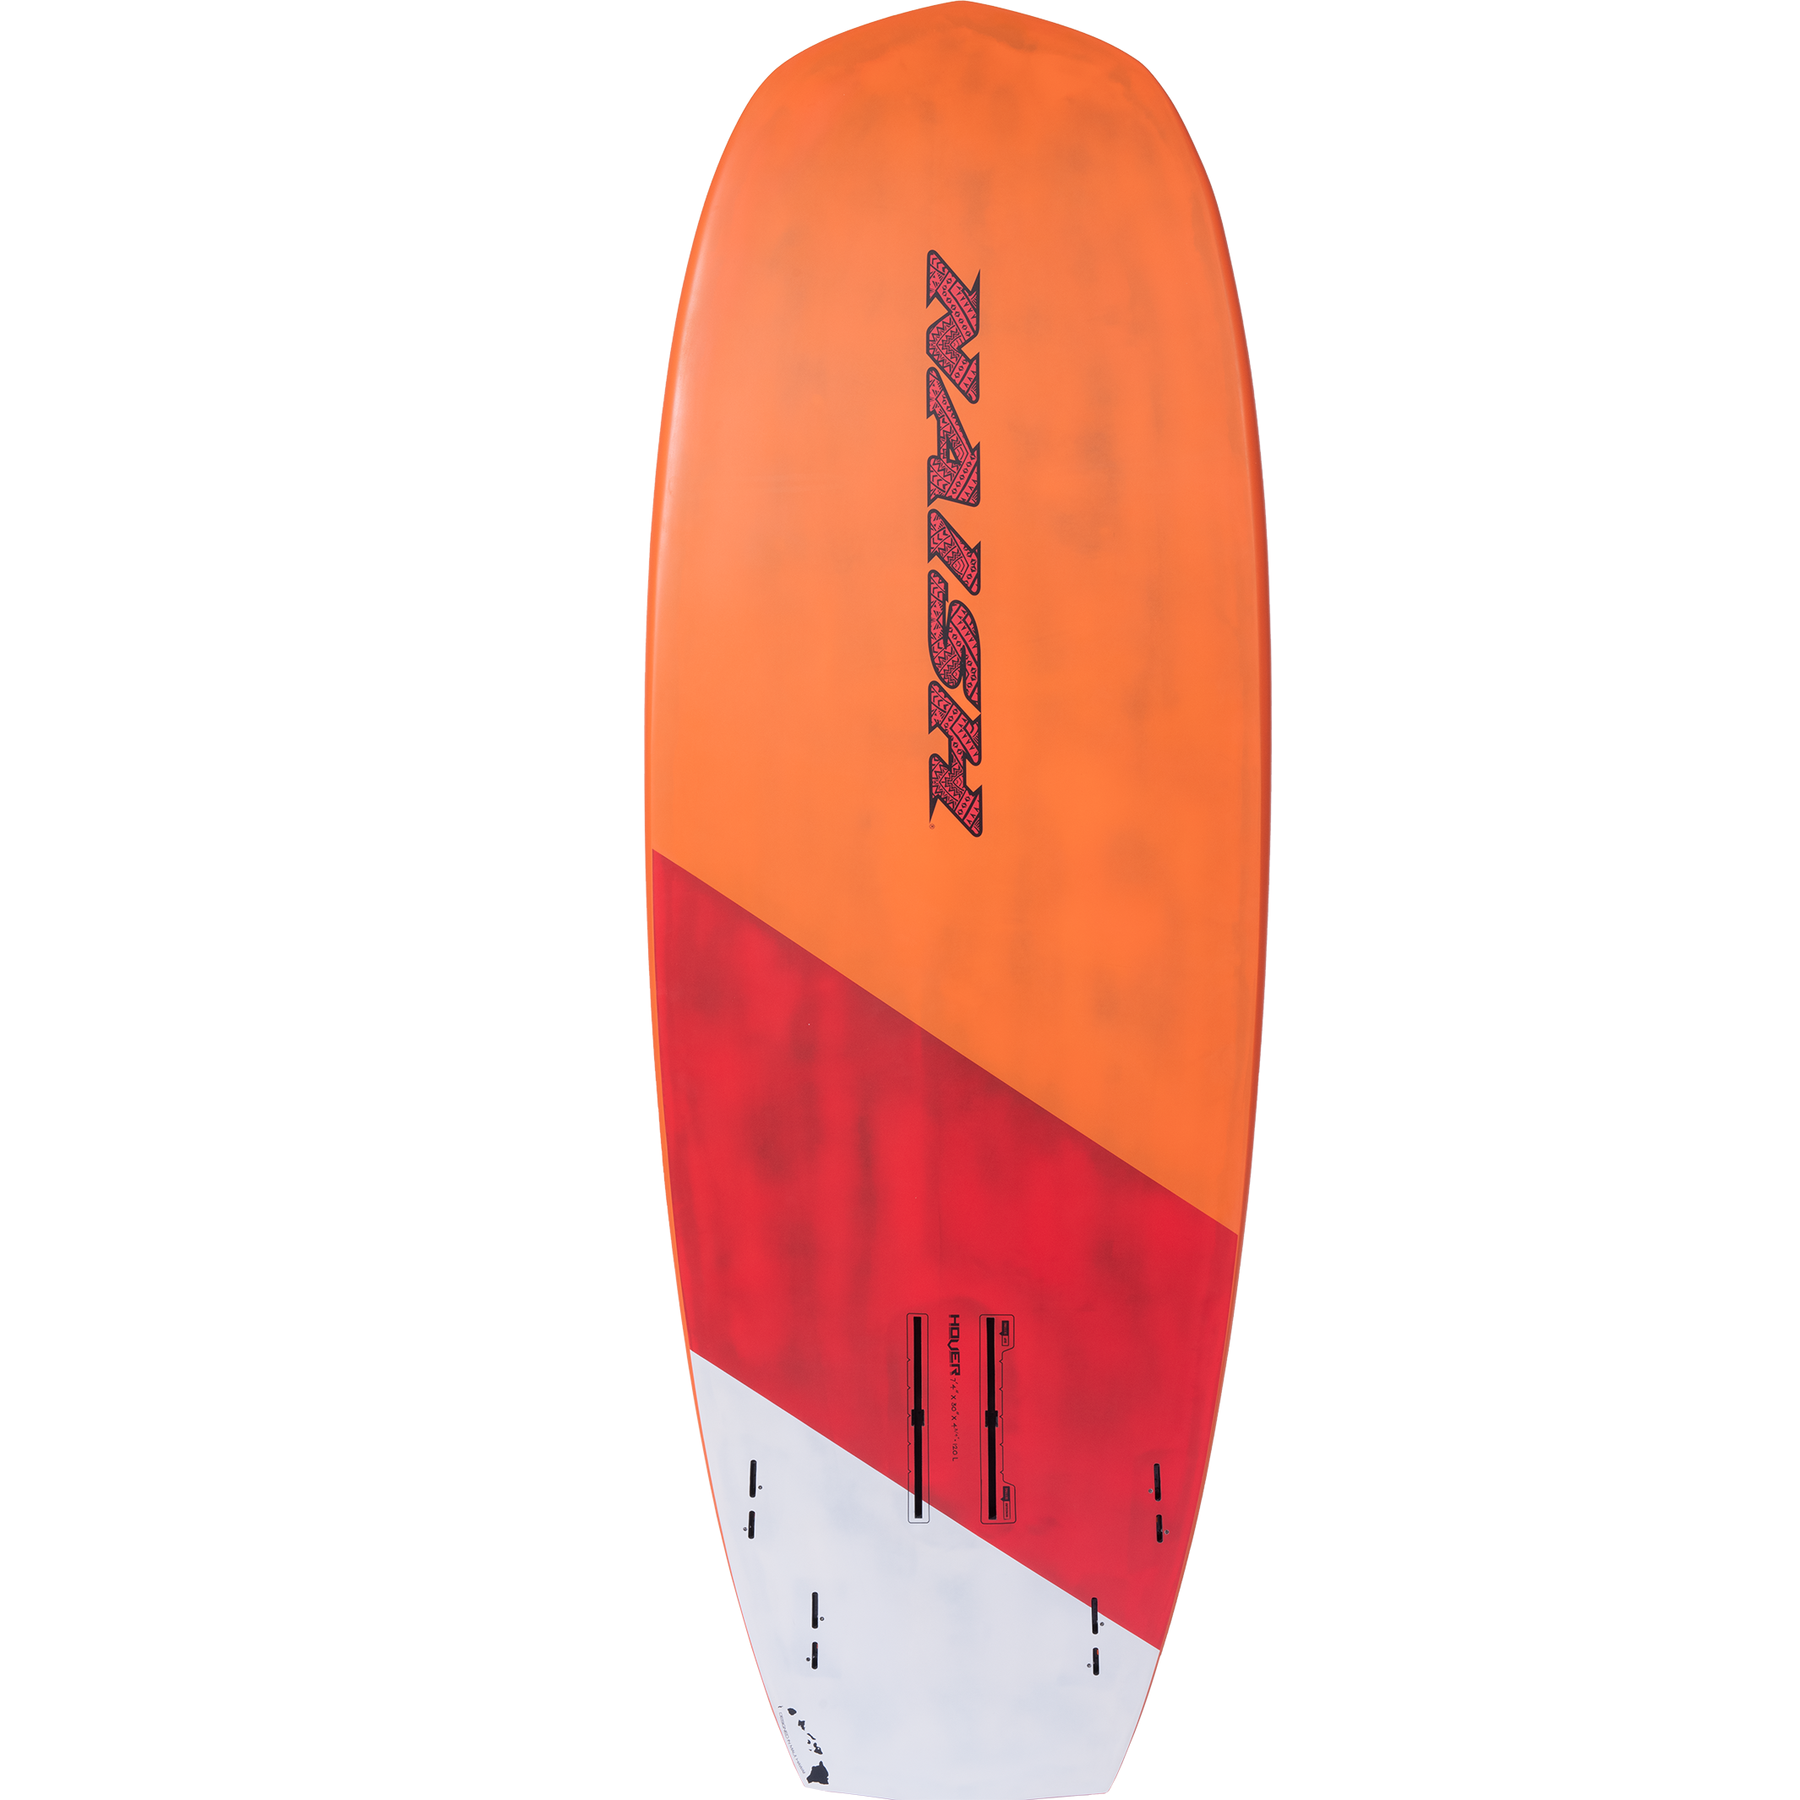 2021 S25 Naish Hover Crossover Windsurf/SUP Foil Board